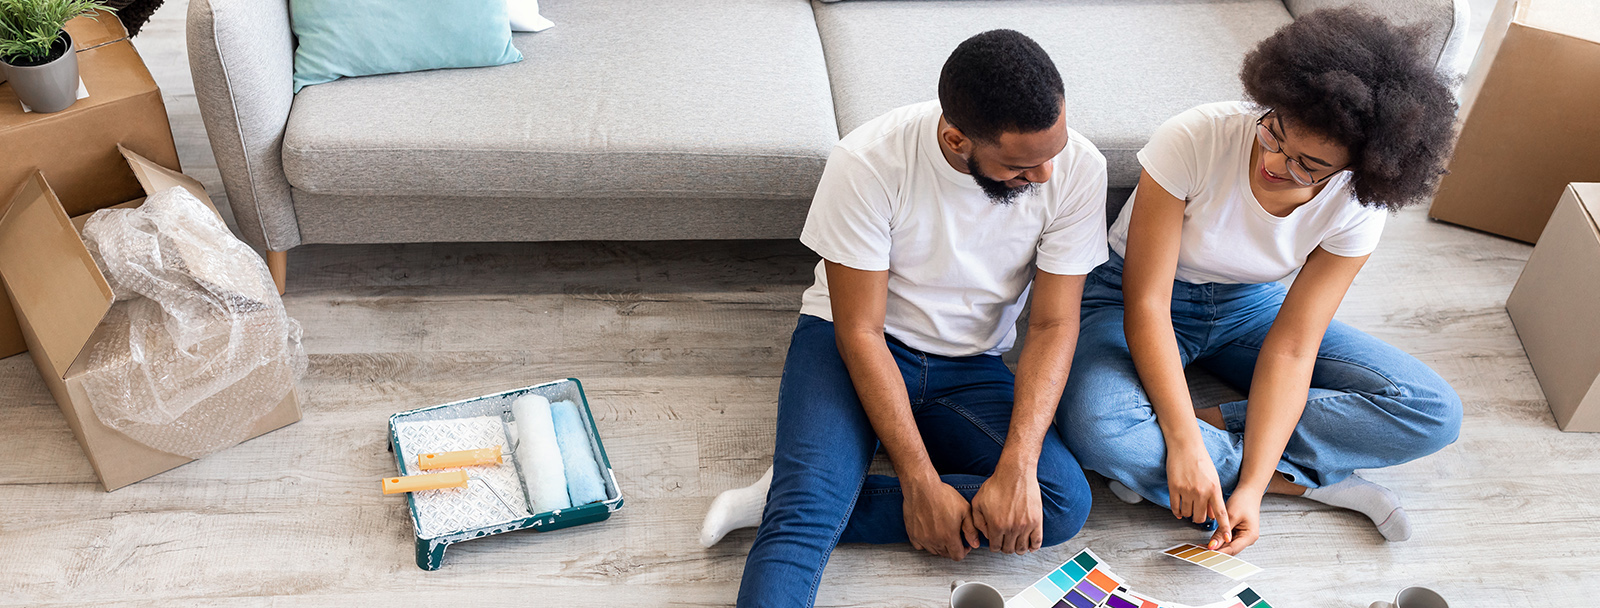 Couple Sitting On Floor Looking at Paint Swatches